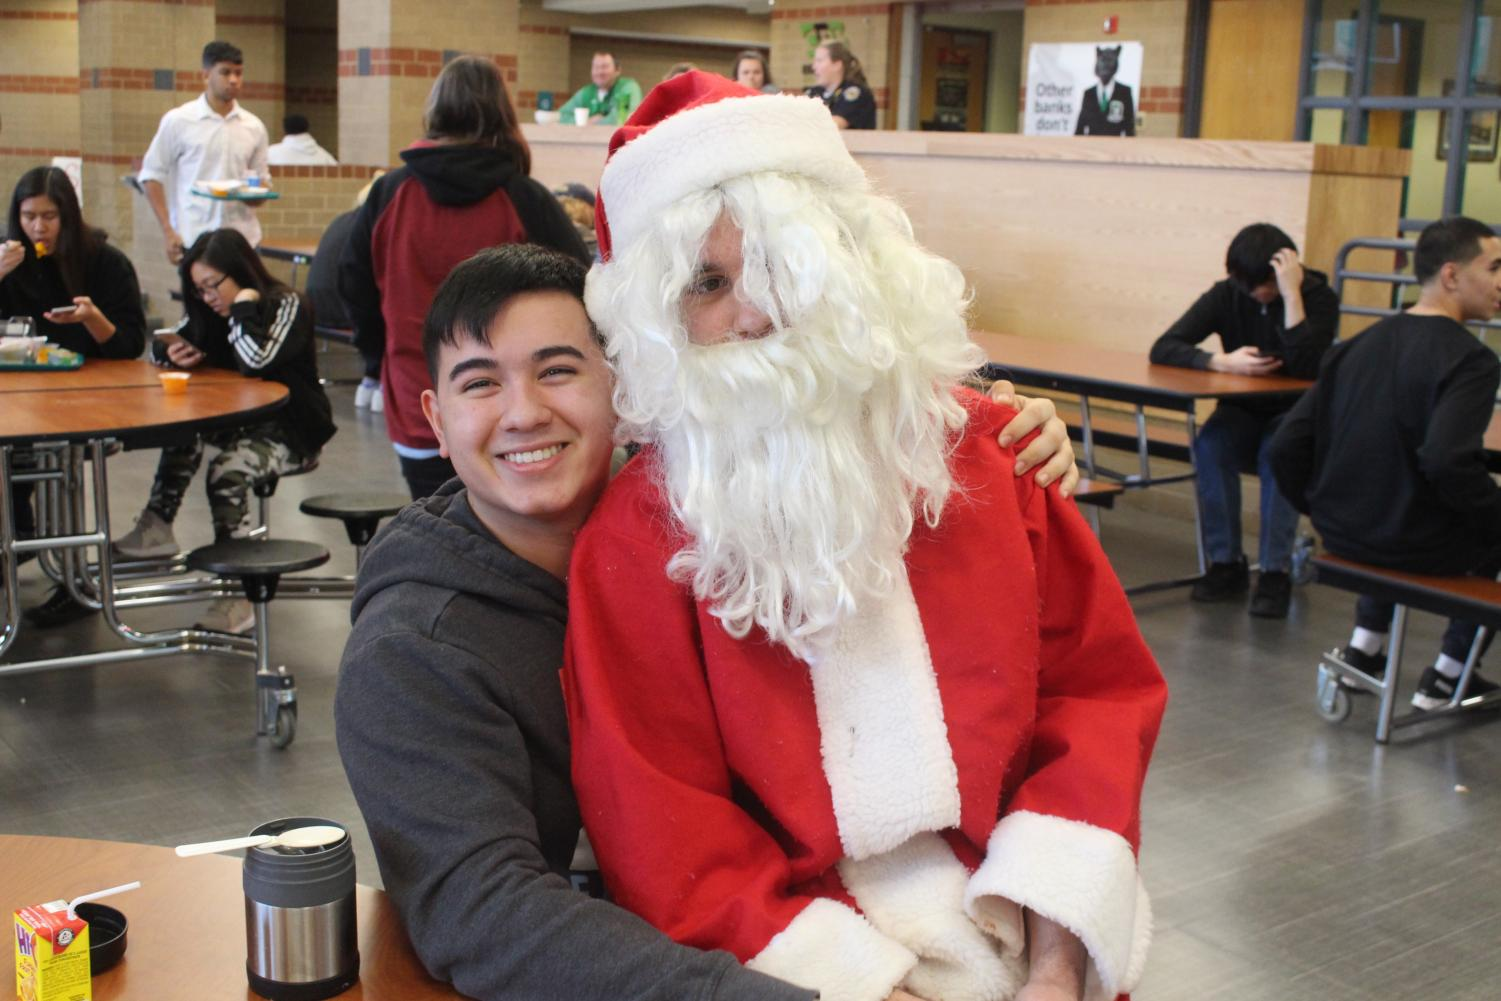 A+student+poses+for+a+photo+with+Santa